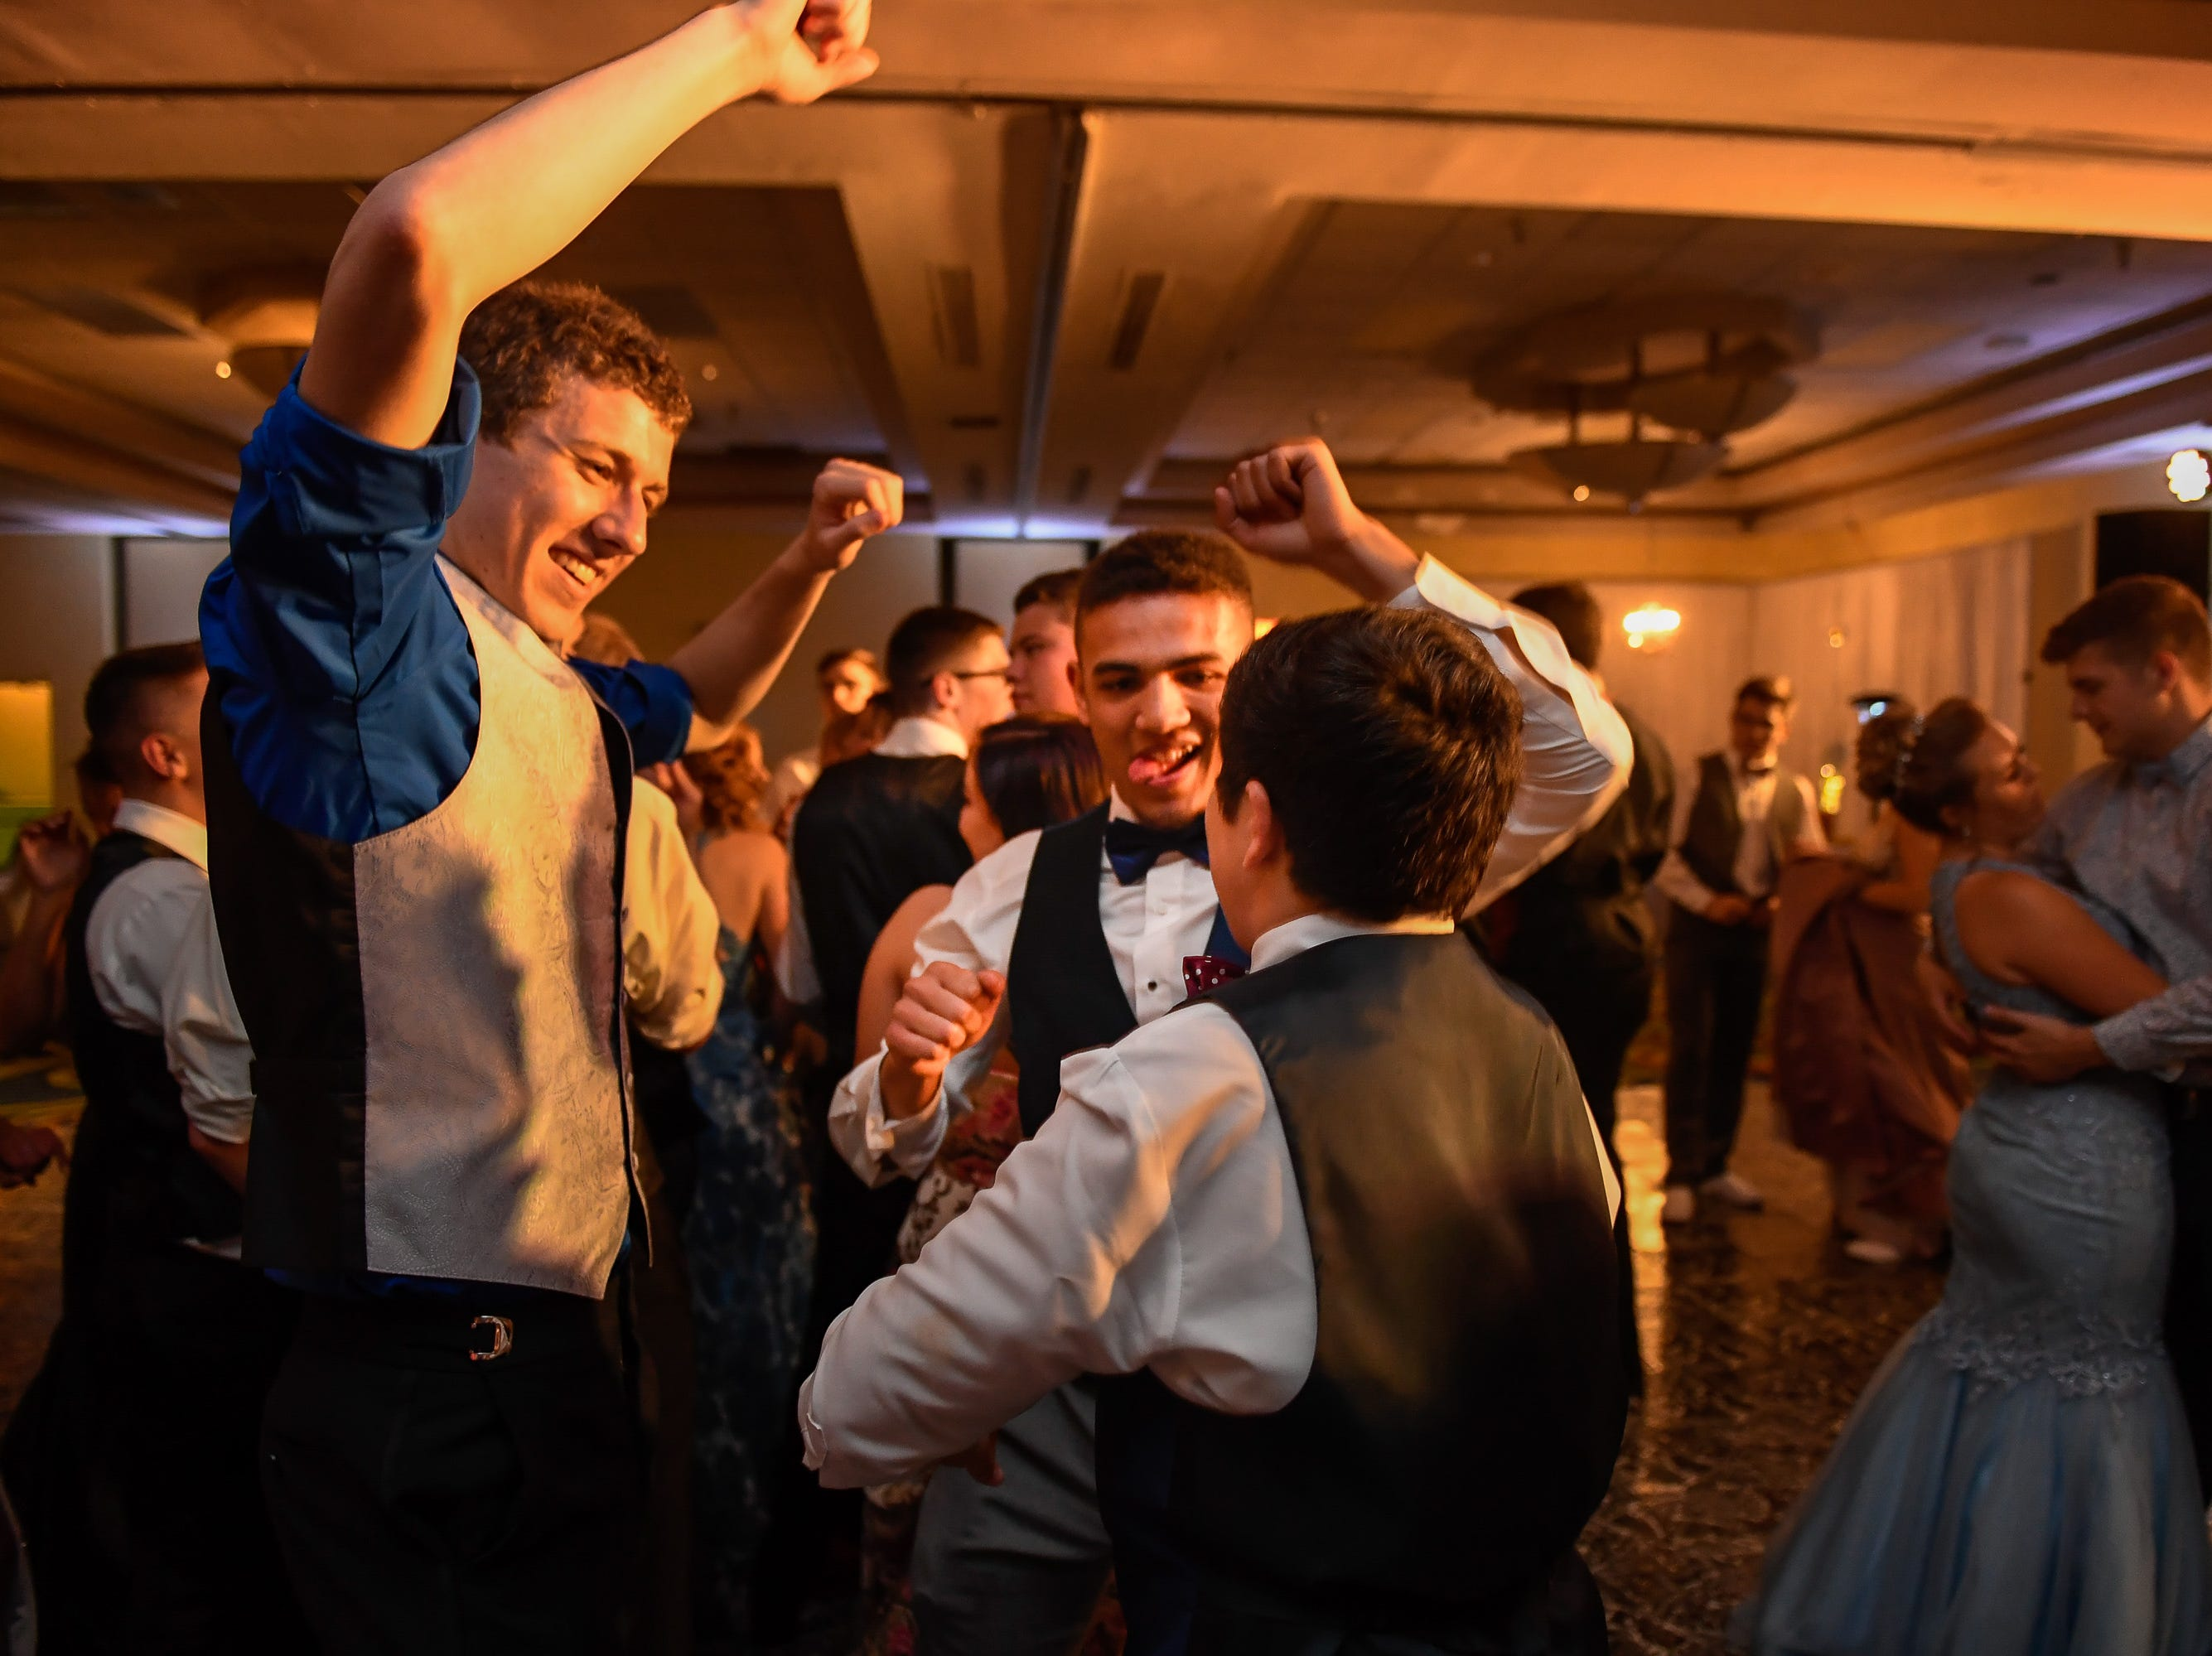 Left to right, Payton Buse, David Schafer and Camden Kemper on the dance floor at the Tecumseh High School prom held at the Airport Holiday Inn Friday, April 26, 2019.